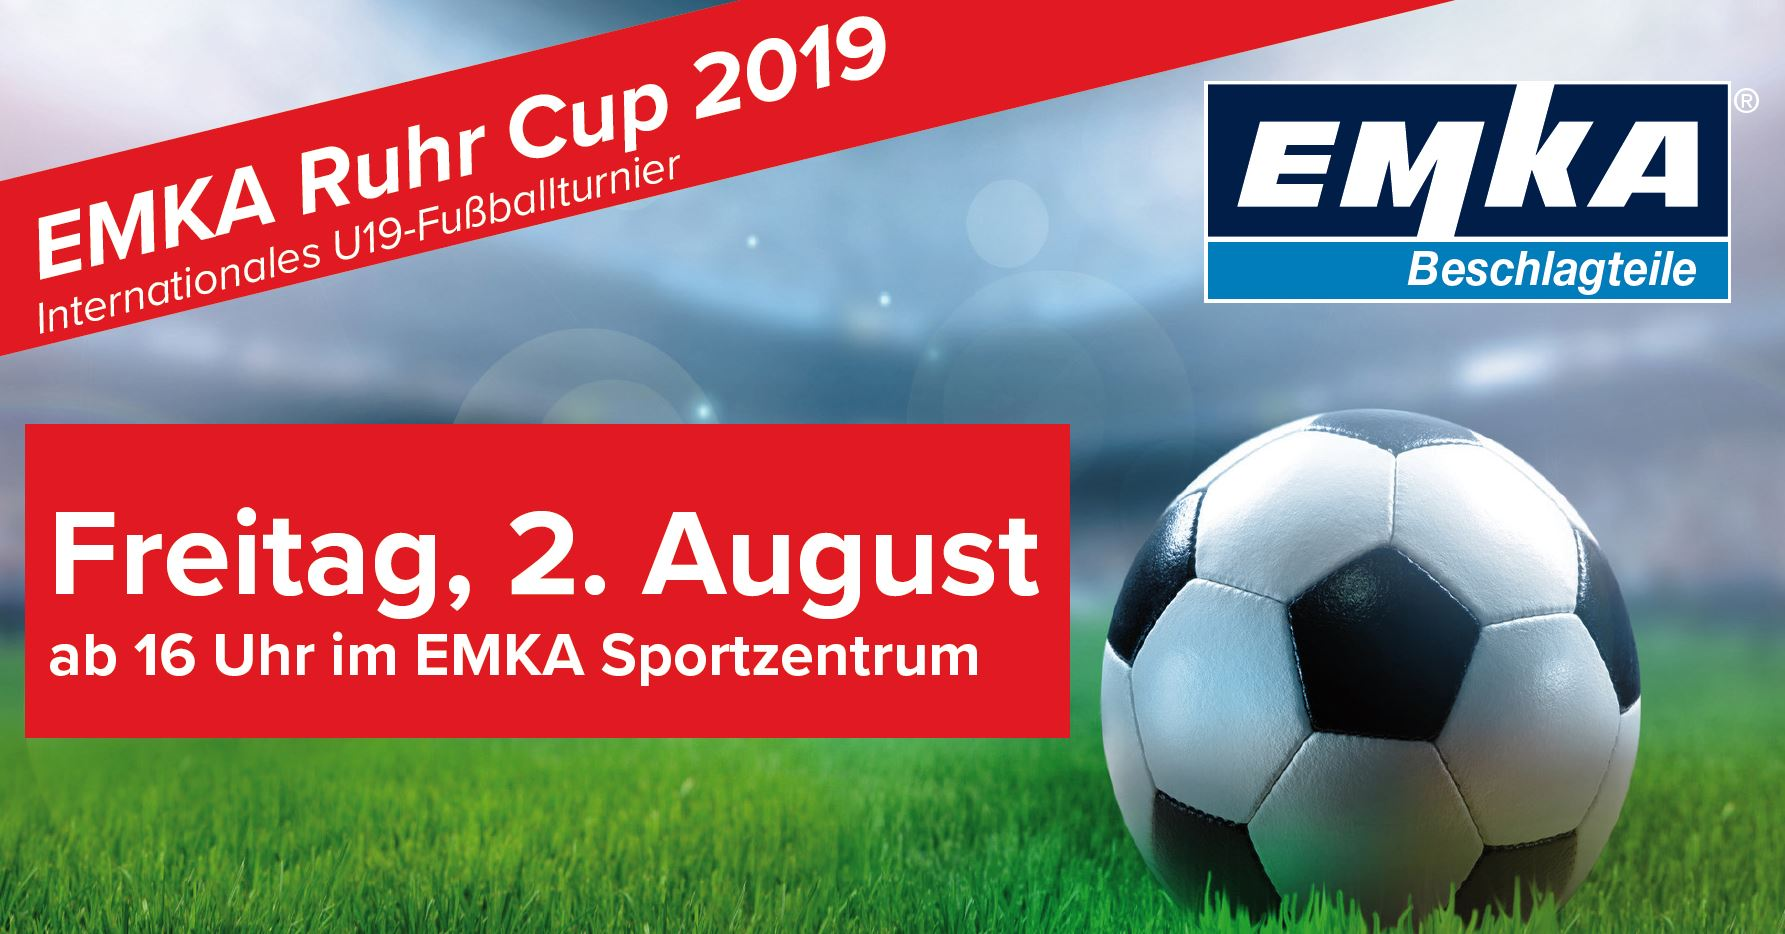 [Translate to at_de:] EMKA Ruhr Cup 2019 - Velbert